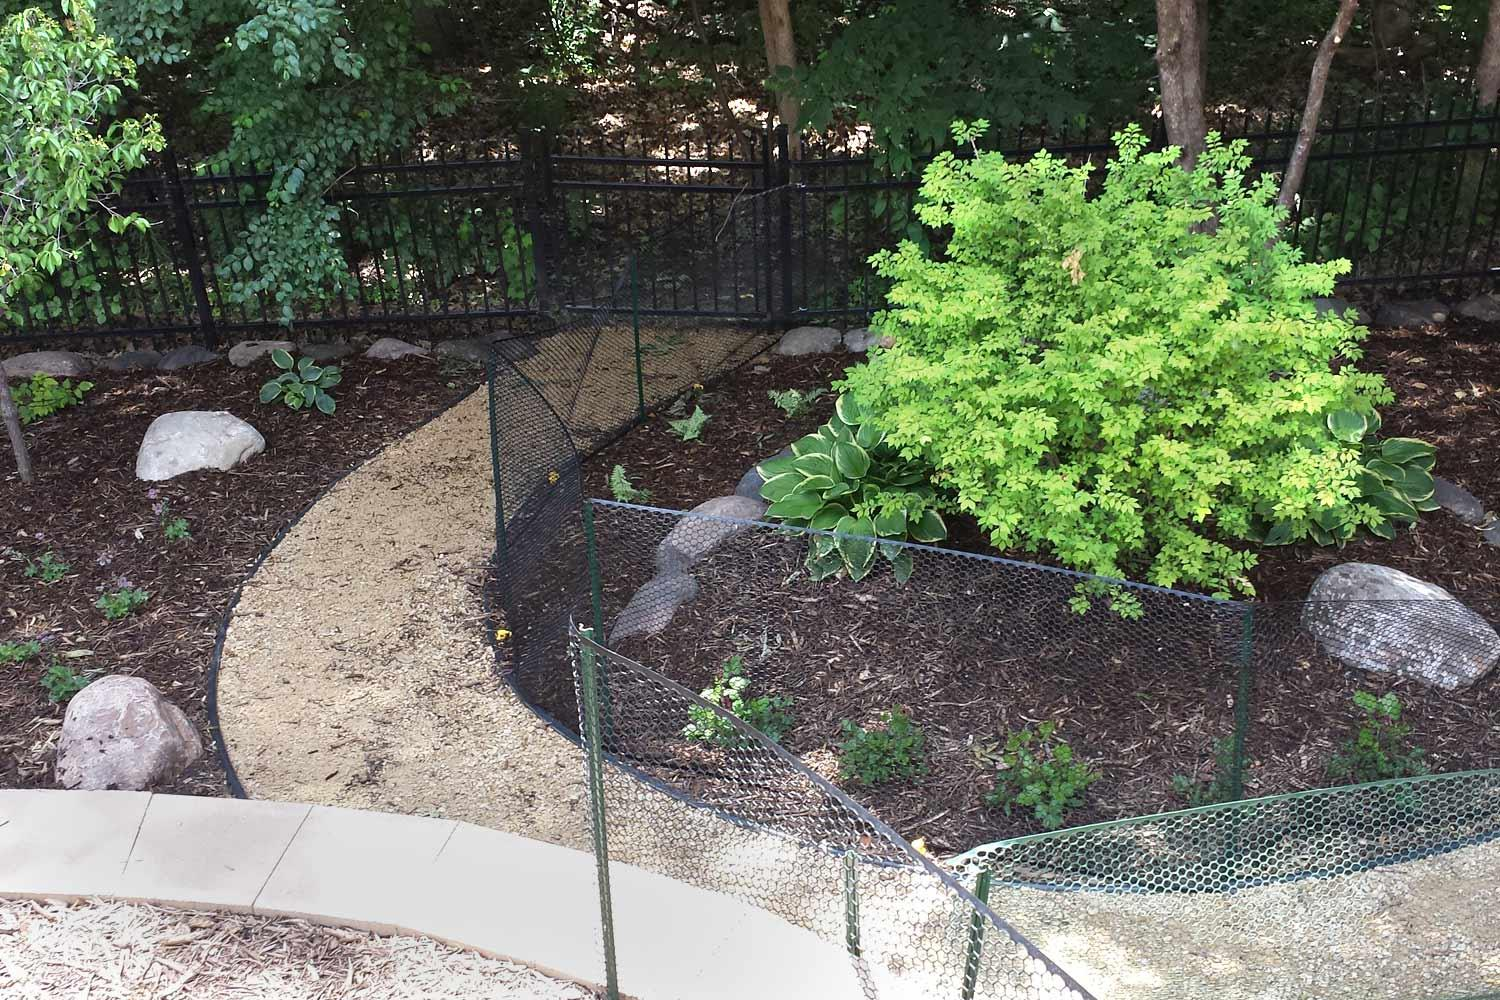 28+ Dog Friendly Backyard Ground Cover Images - HomeLooker